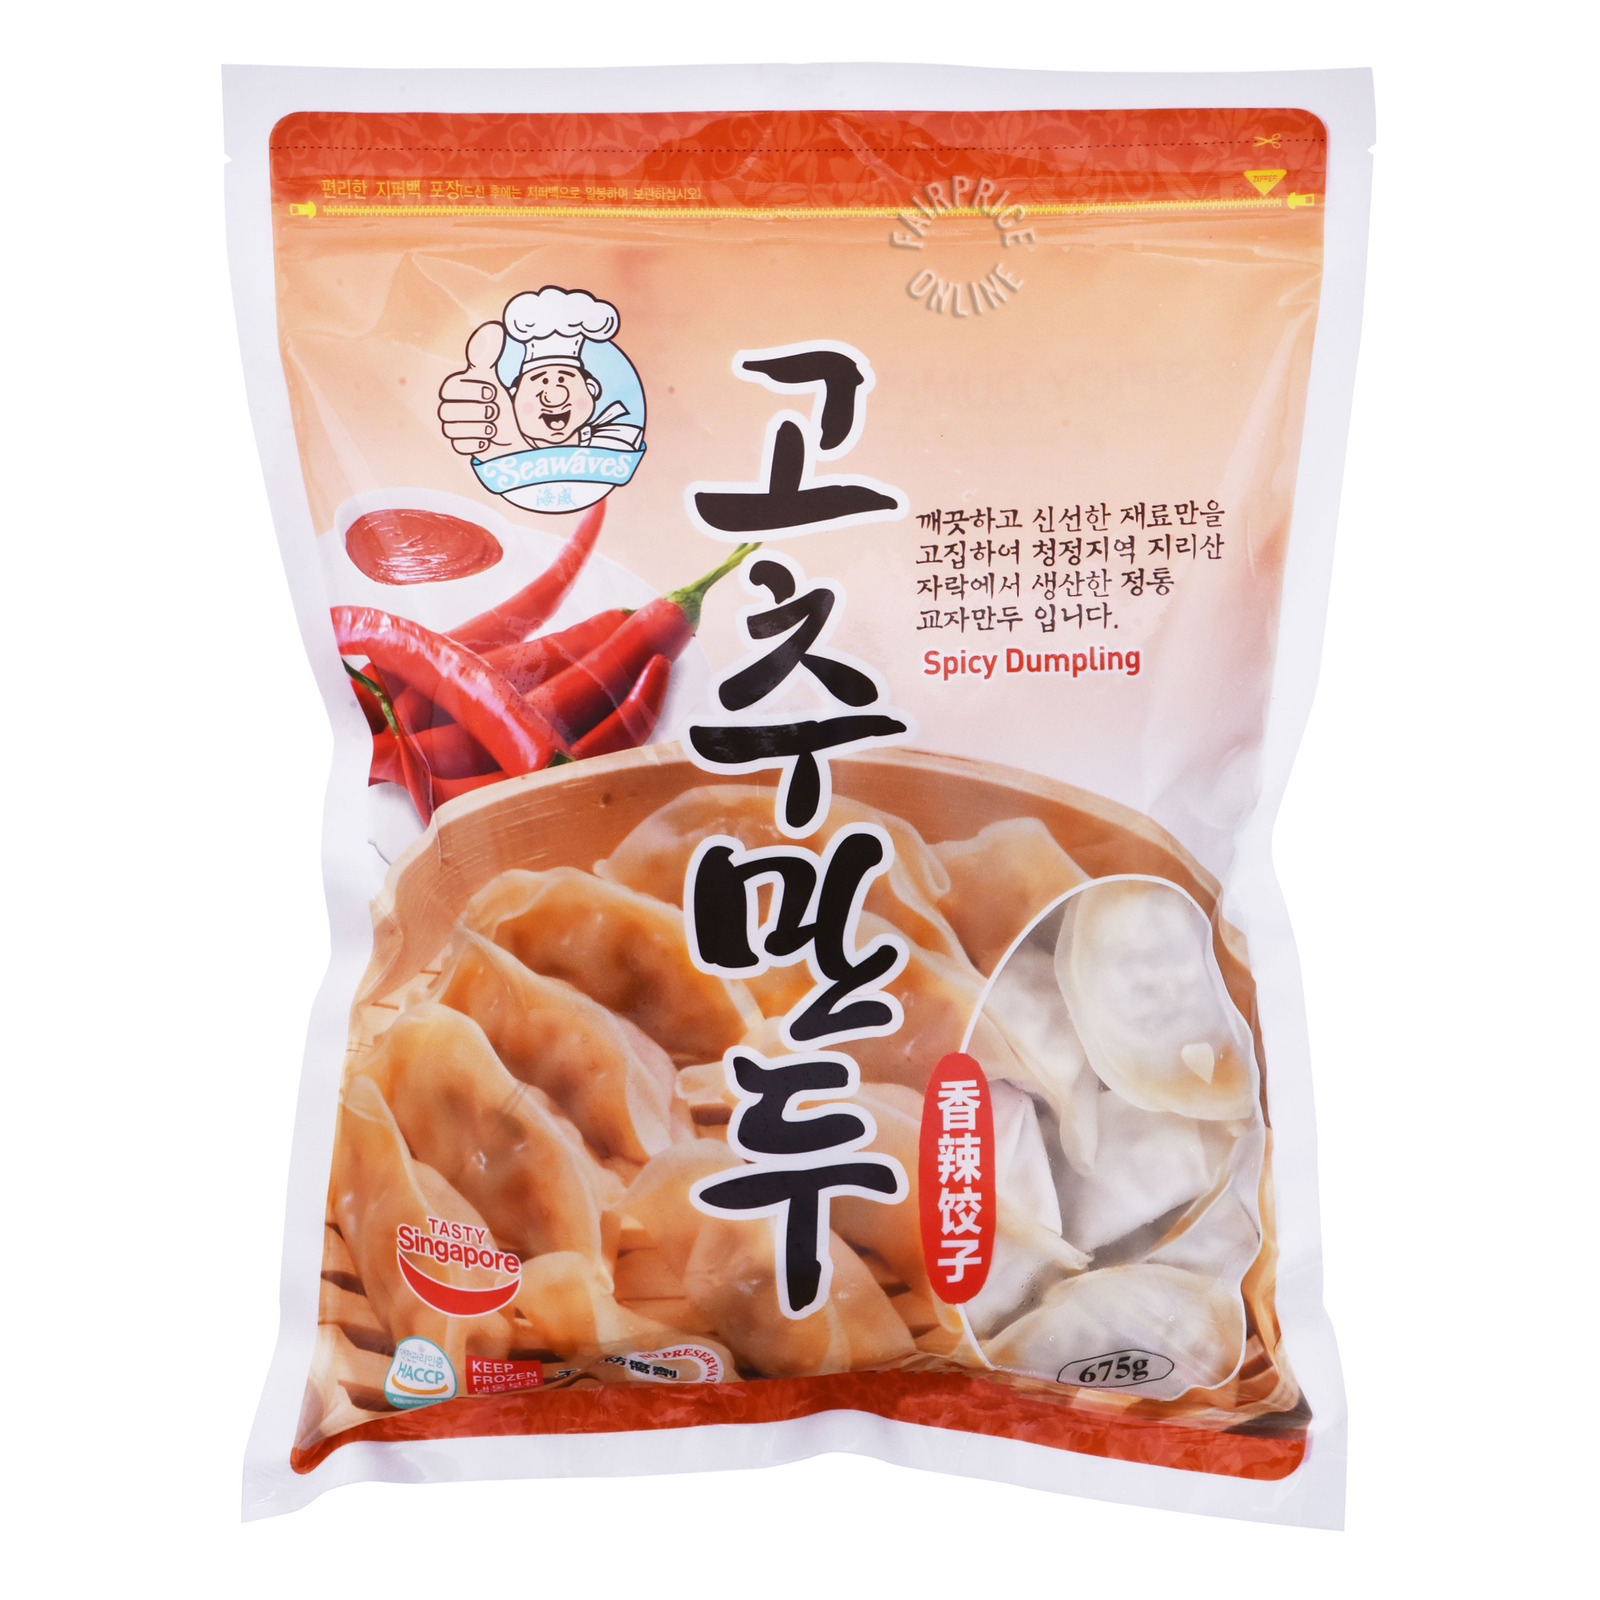 Seawaves Frozen Dumpling - Spicy